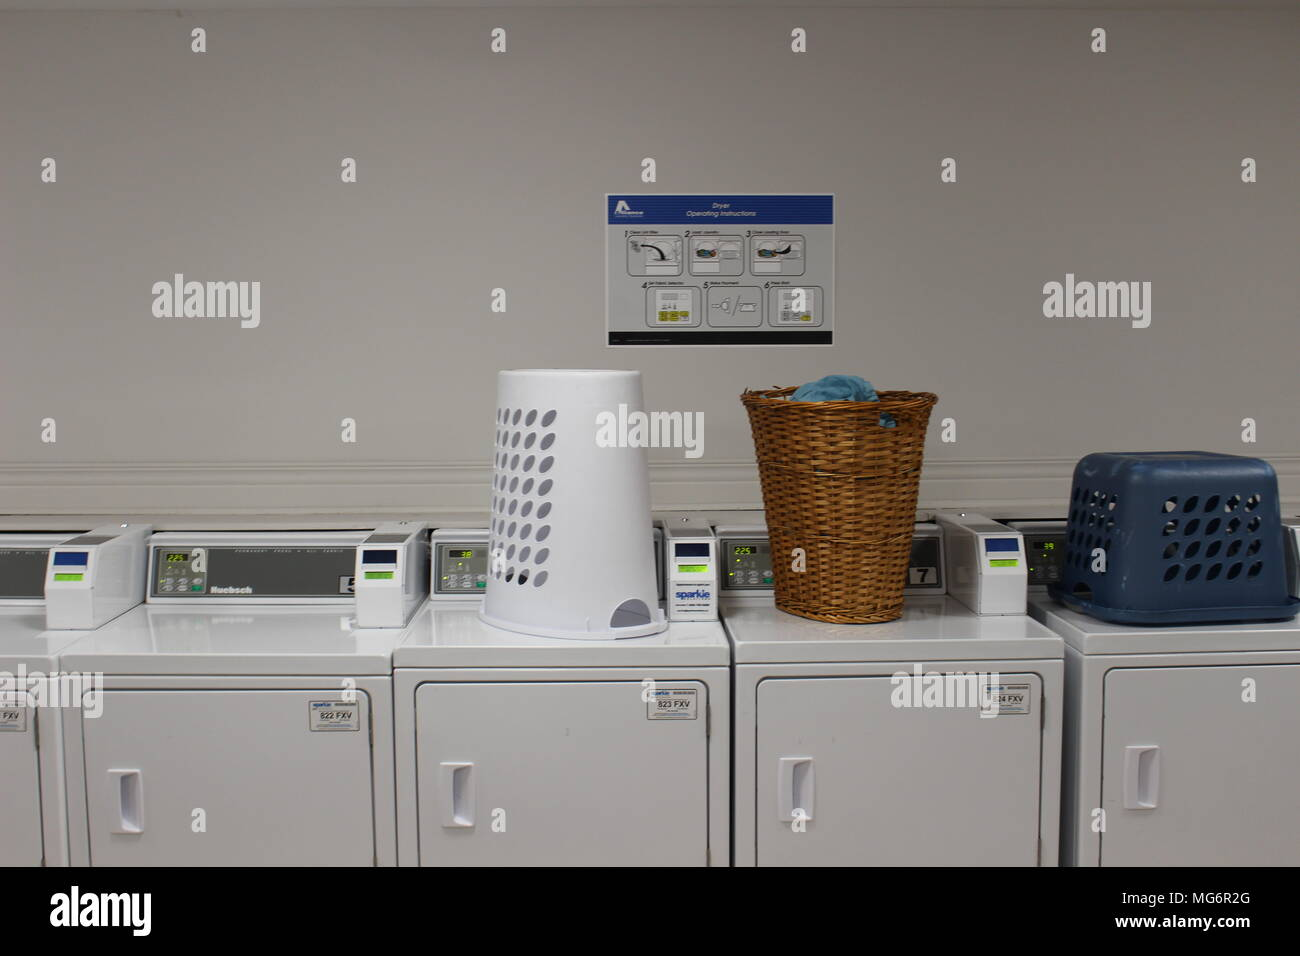 Powerful laundry machines and automatic dryers in big laundromat with a cupboard sinks for rinsing and tap water.. - Stock Image